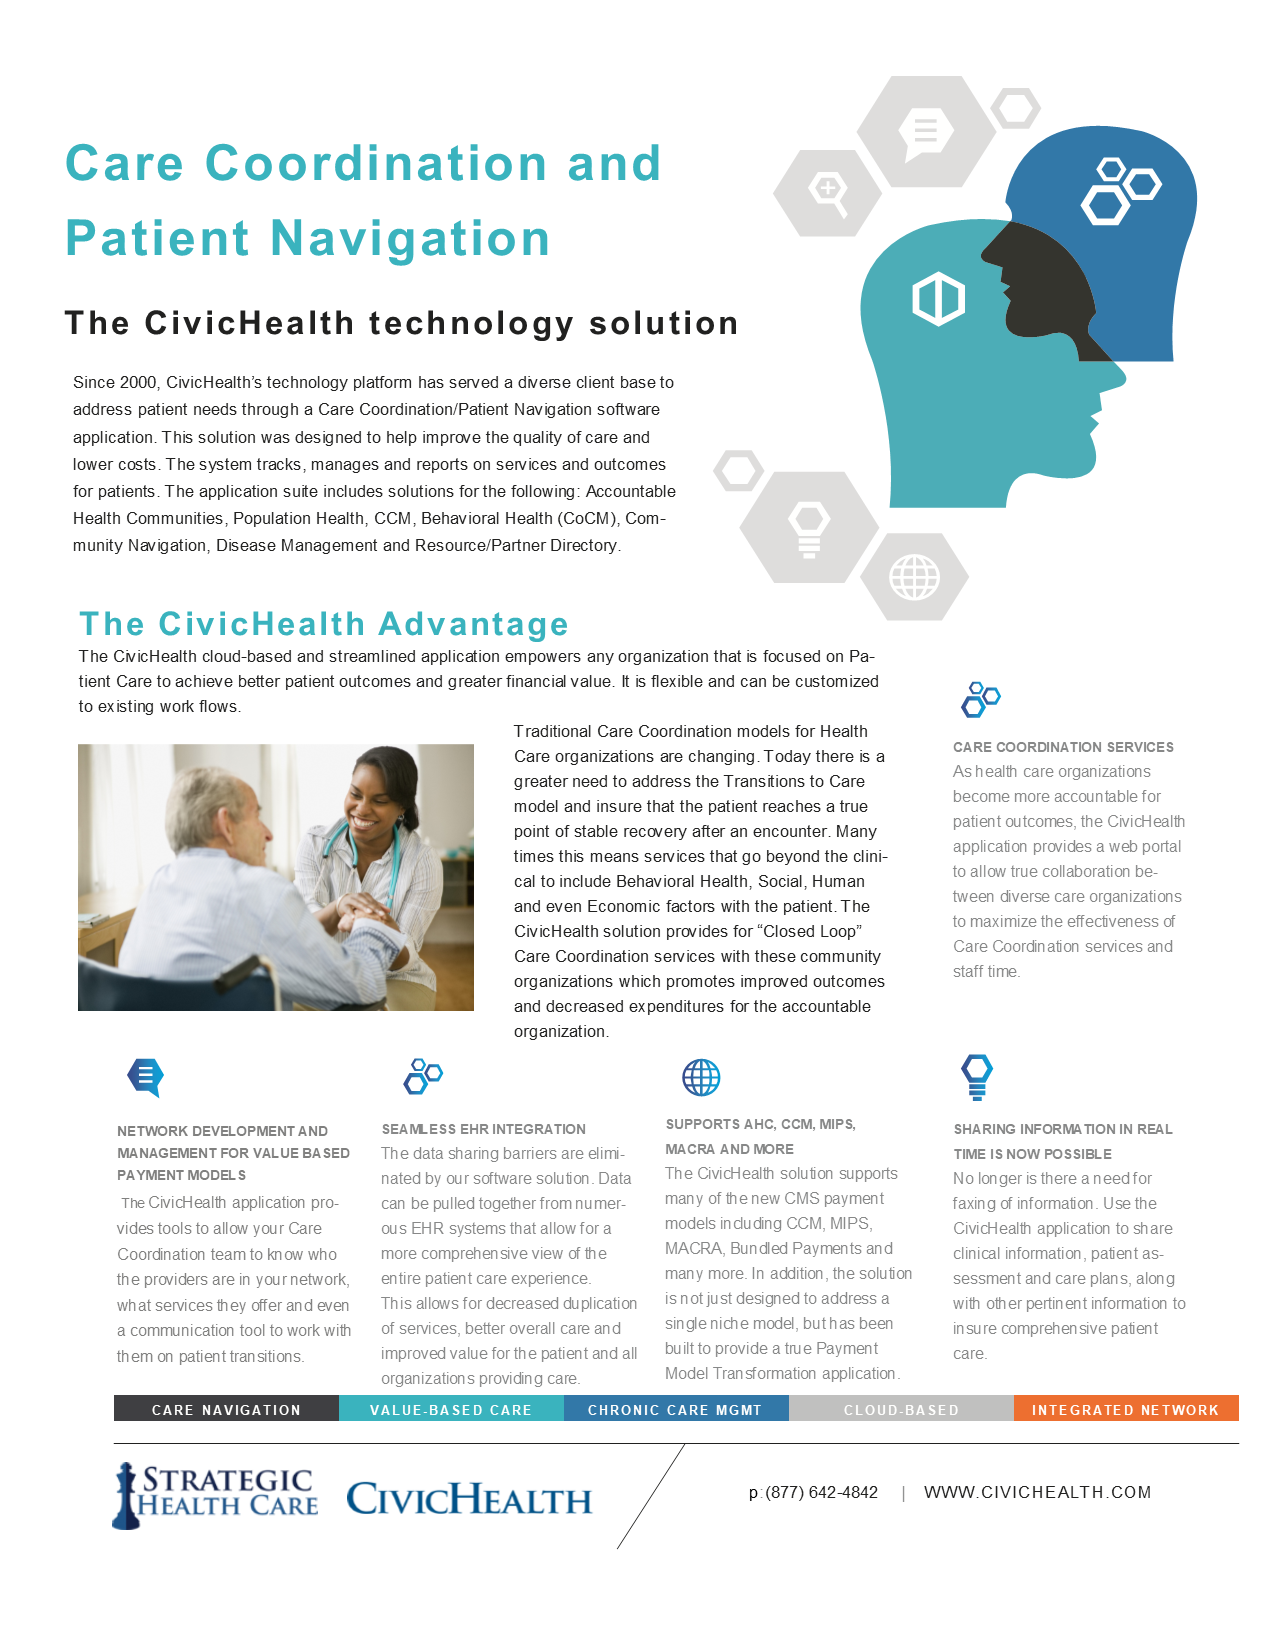 Care coordination and patient navigation CH